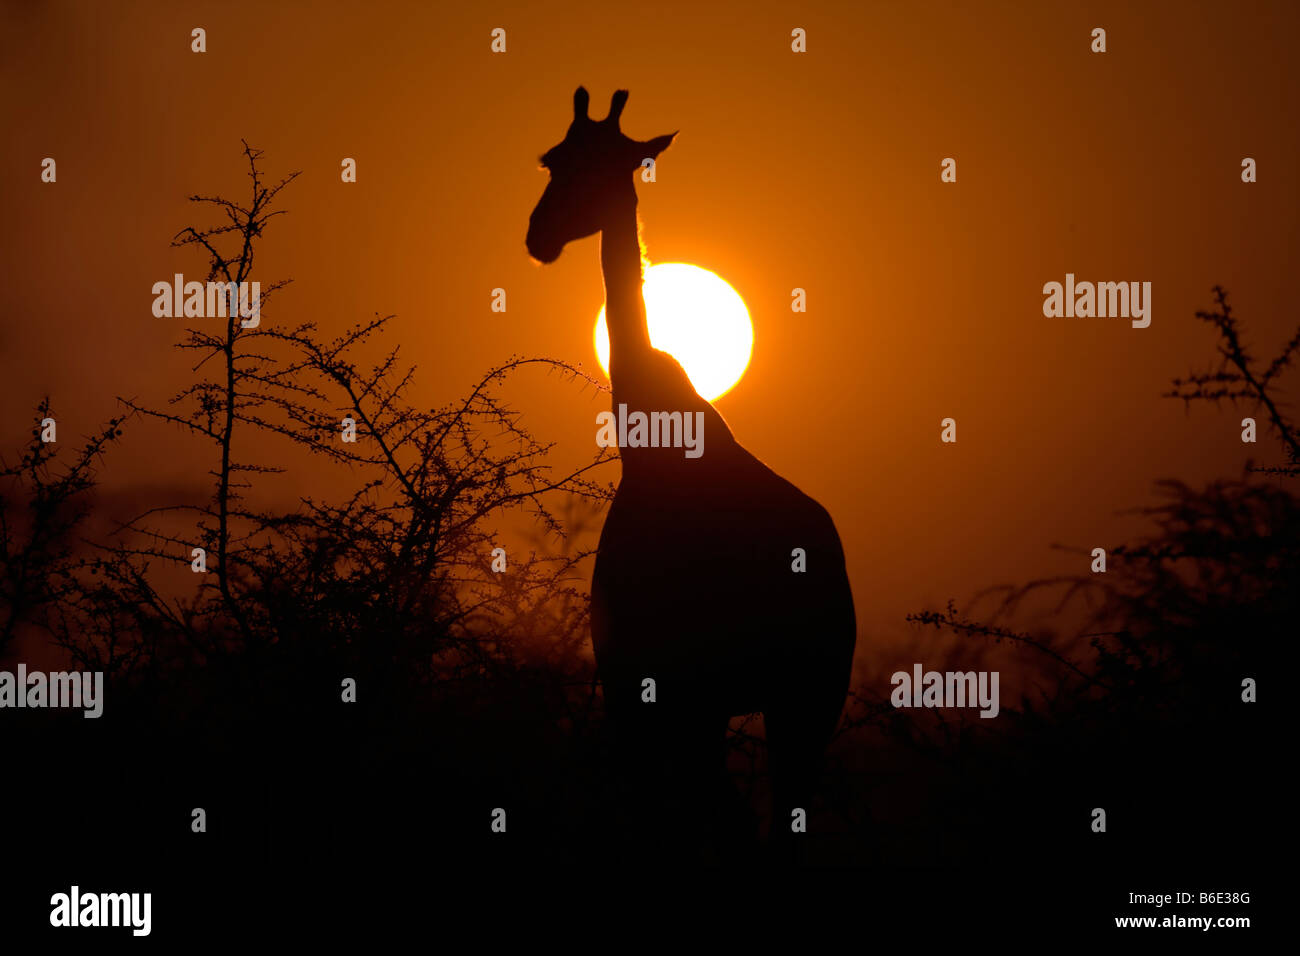 Girafe Silhouette dans Soleil Levant, Etosha National Park Photo Stock